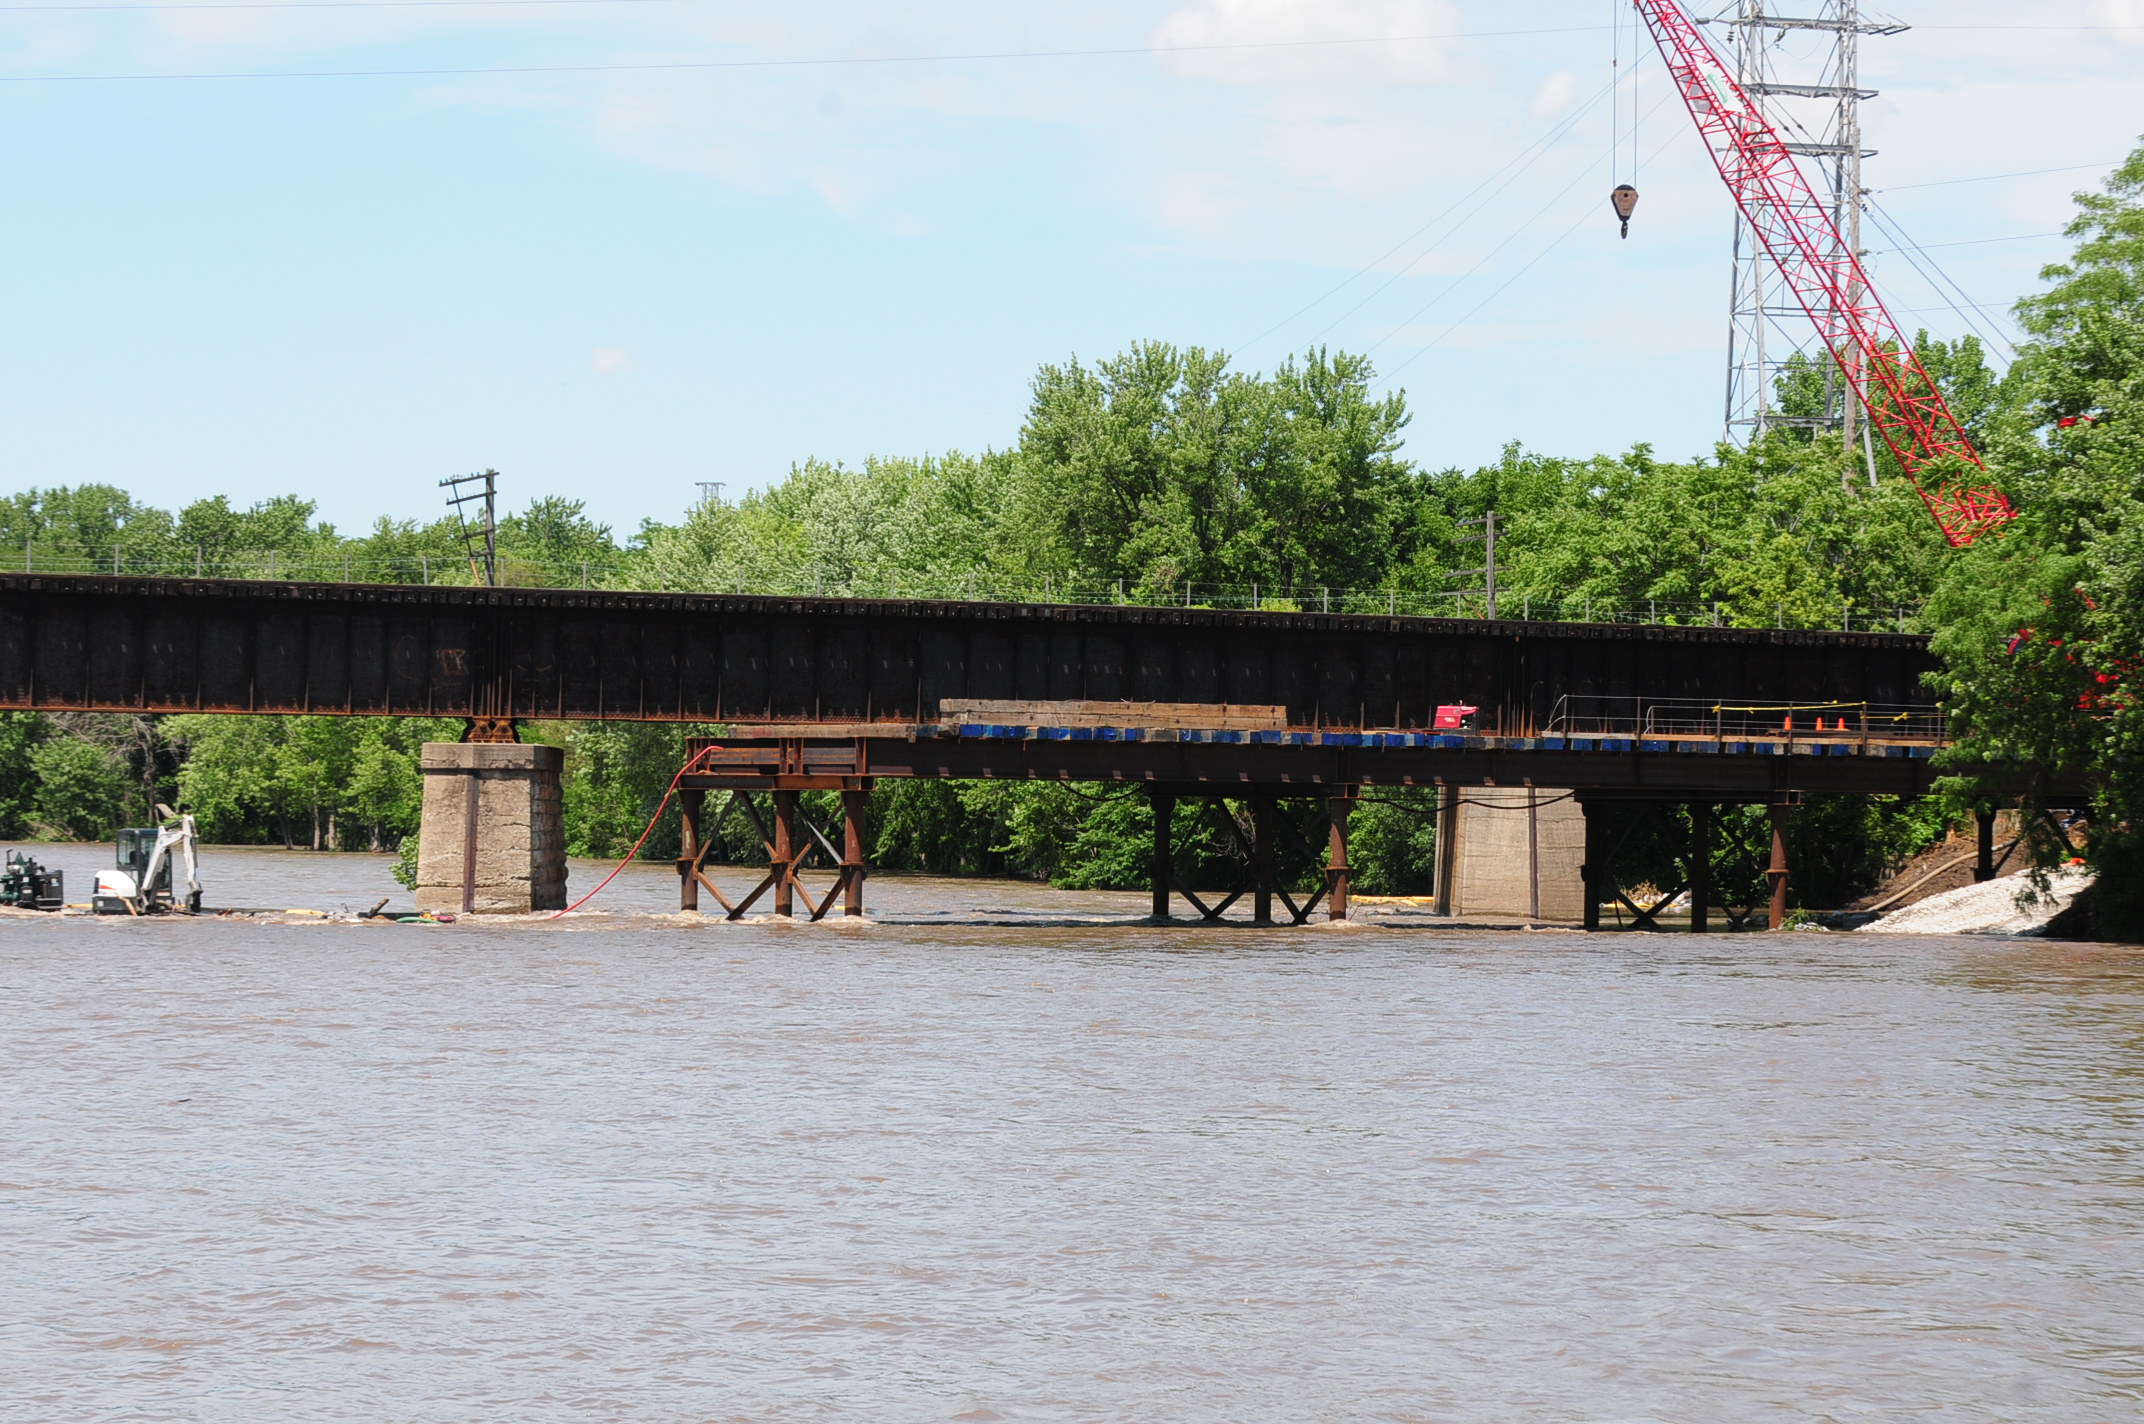 Kankakee River 6.16.17 temporary bridge